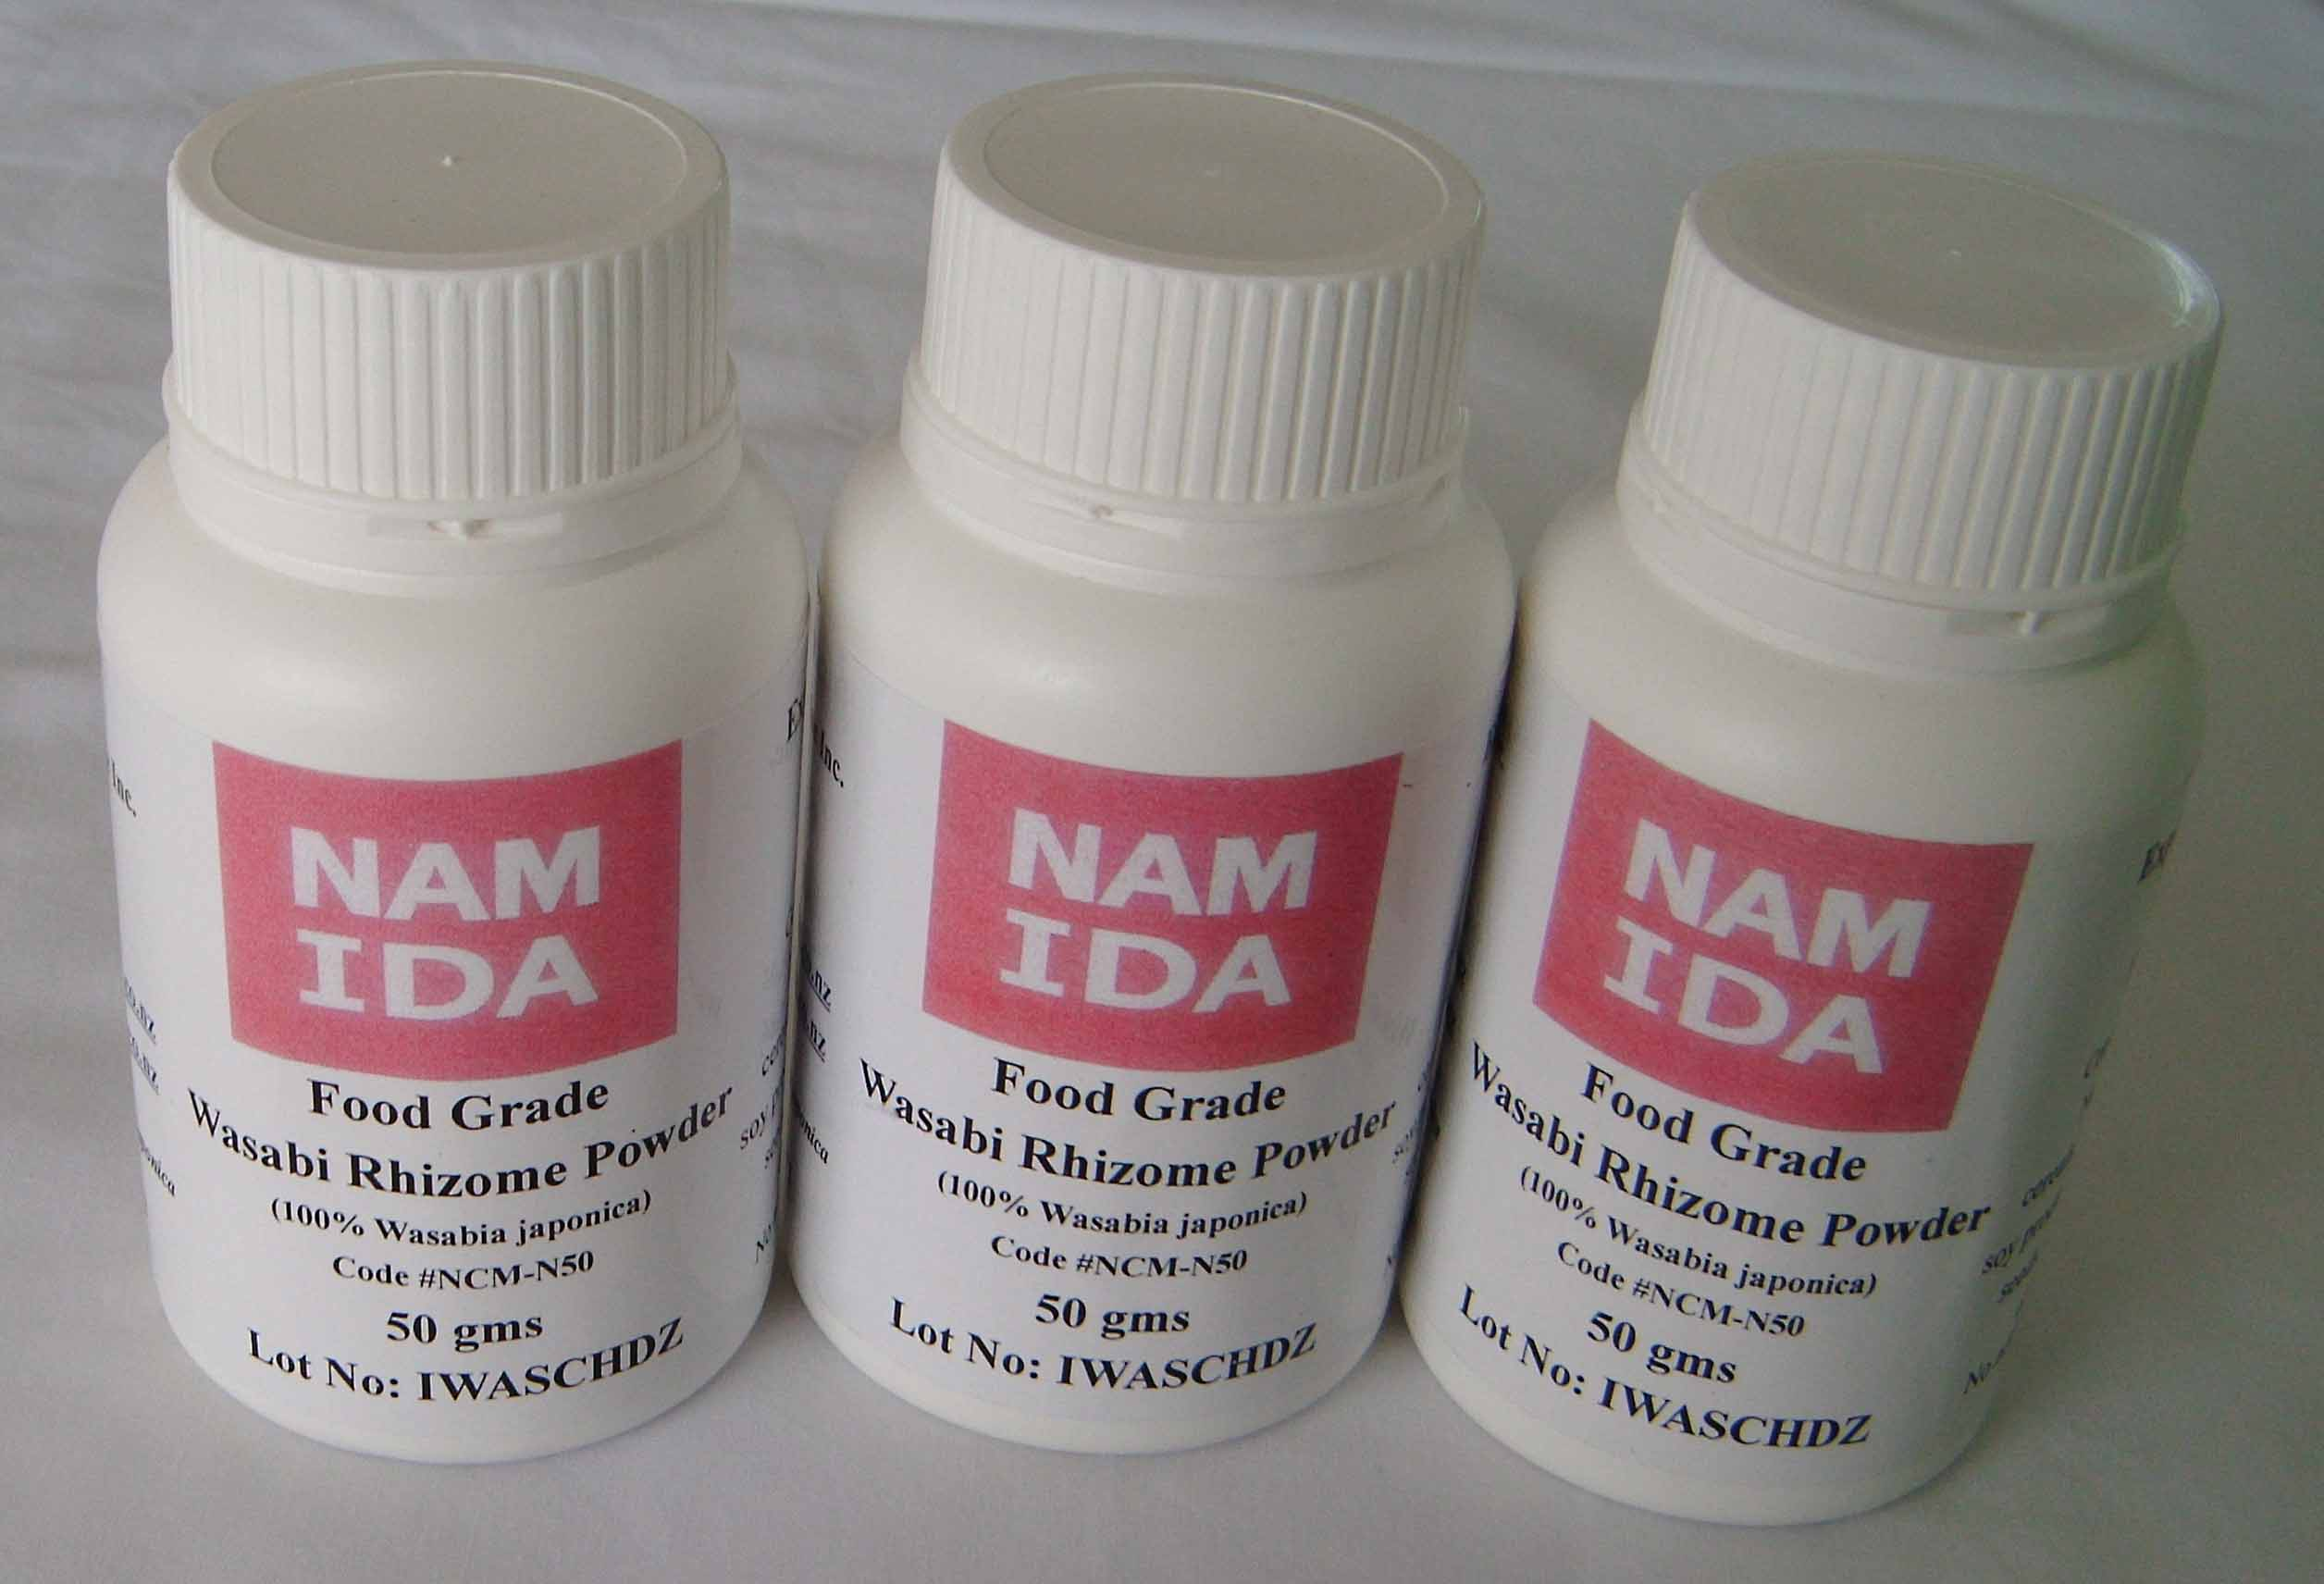 Namida 100% Wasabia japonica powder